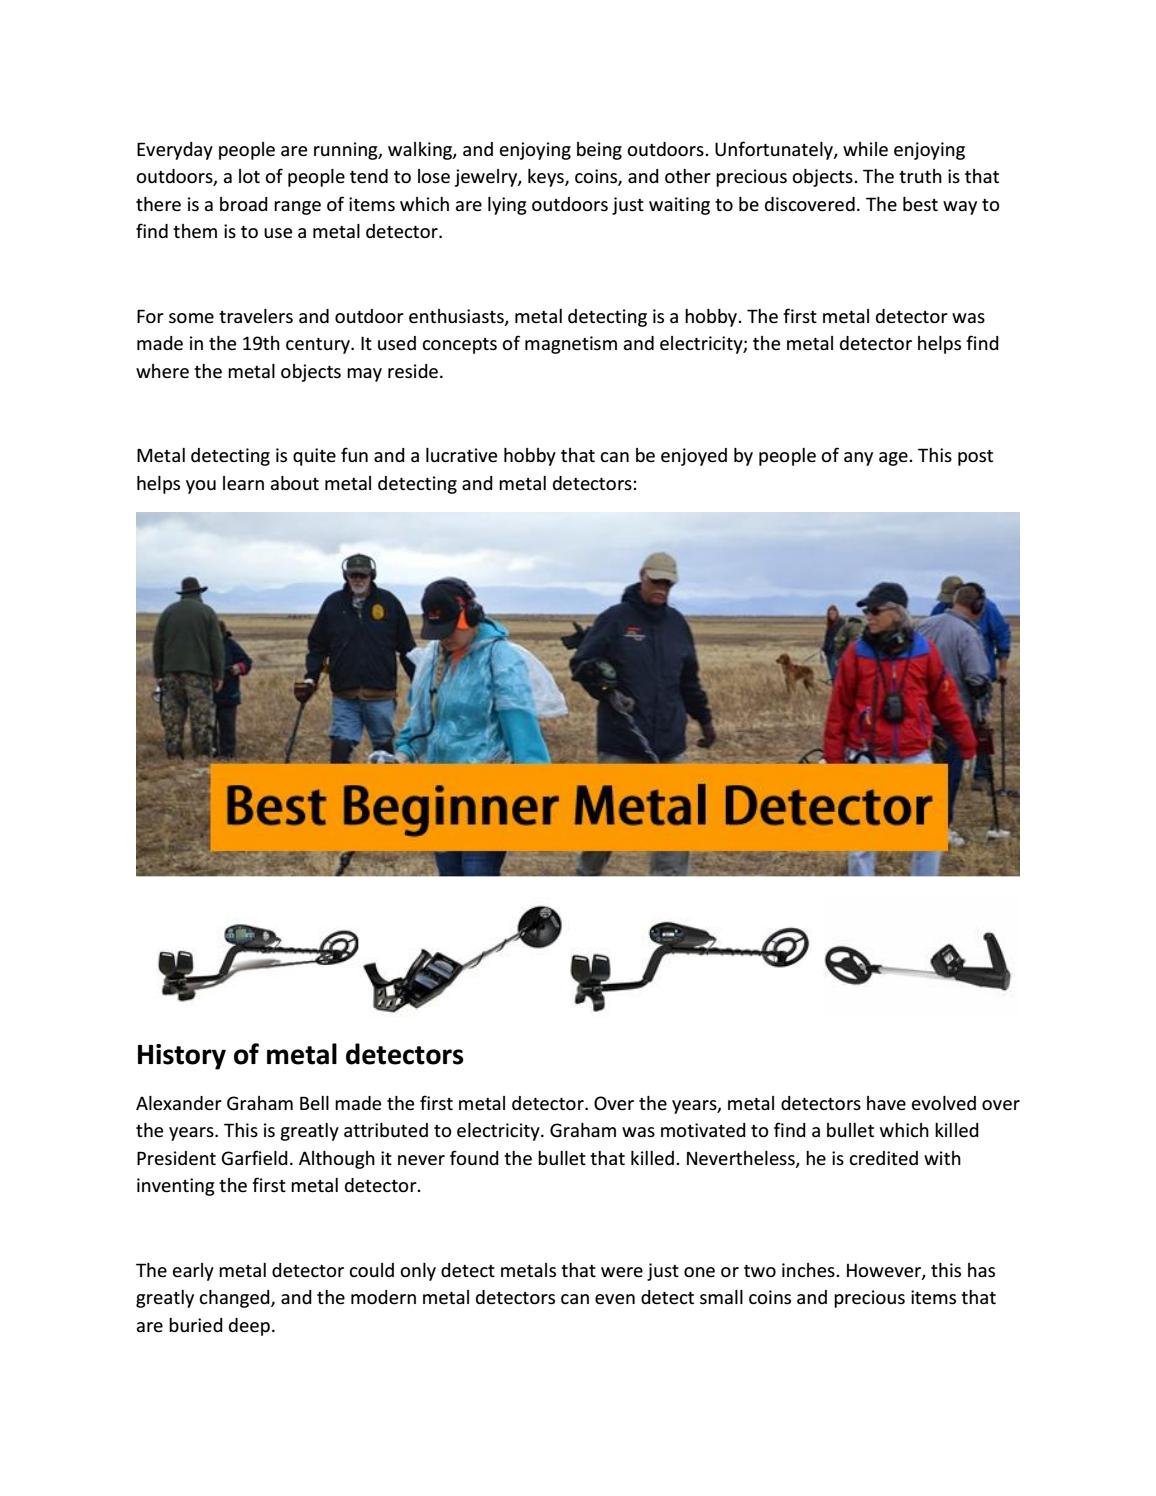 A Complete Guide To Metal Detecting For Beginners By Michael Flores Fun Detector Findcoins At The Beach Issuu